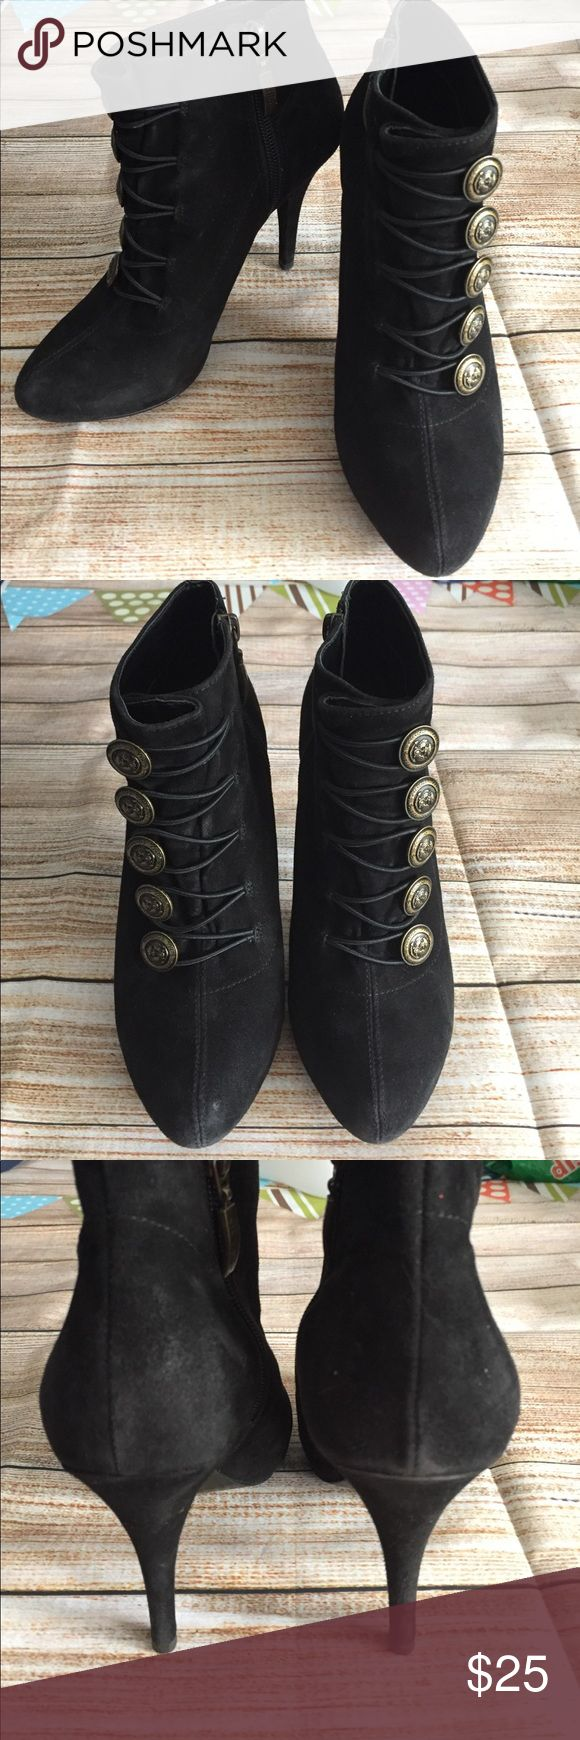 Guess military type black ankle booties Stunning - perfection for any outfit - love these! Clean; no major indications of wear Guess Shoes Ankle Boots & Booties